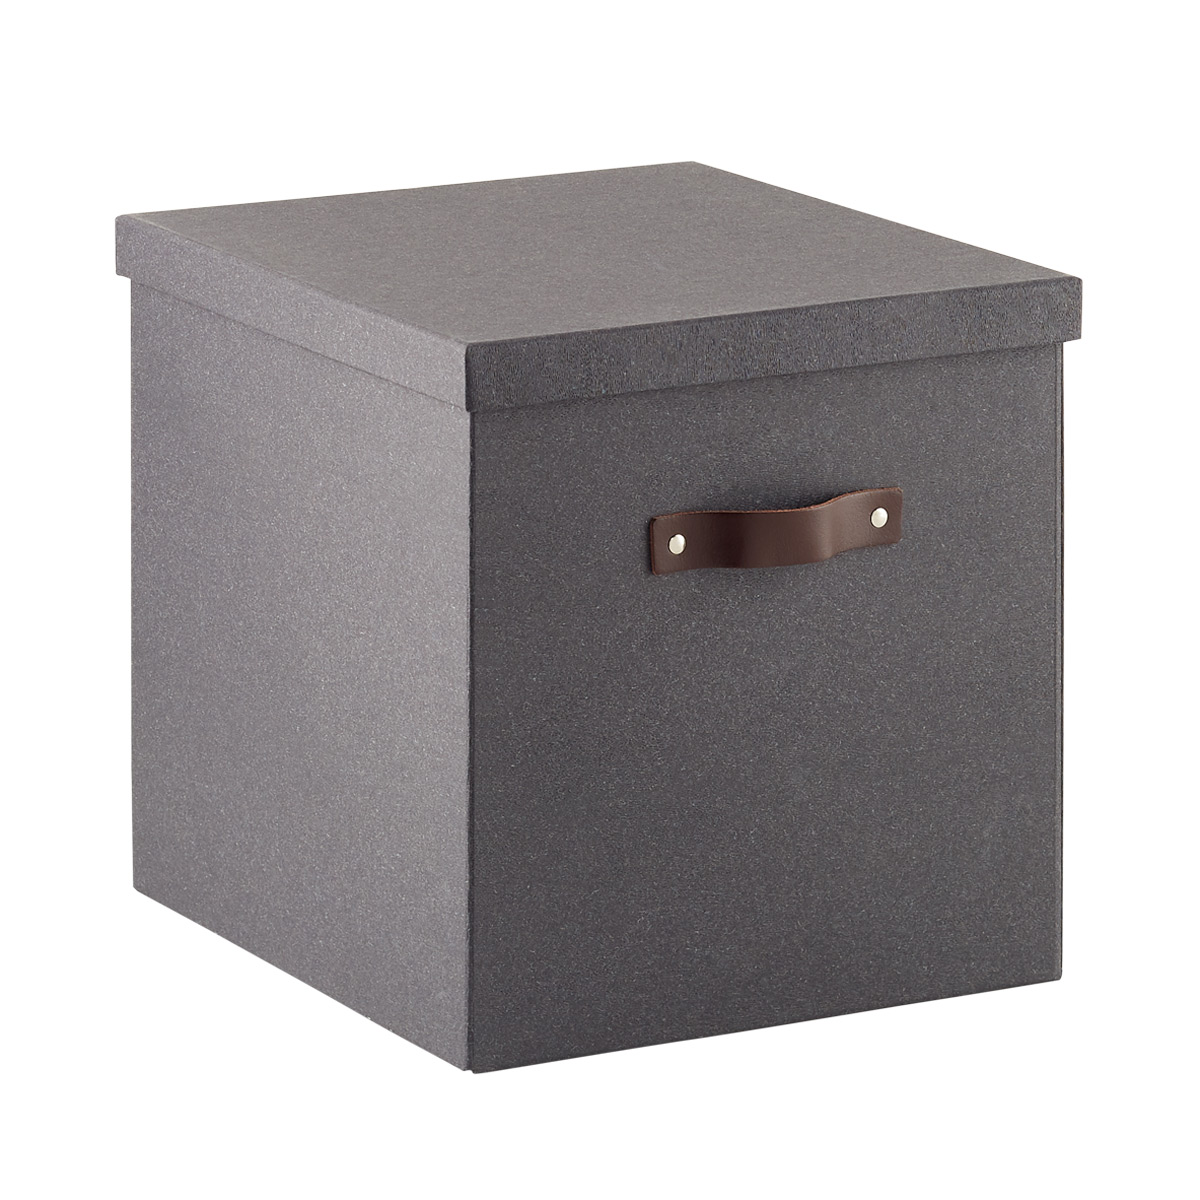 Bigso Black Woodgrain Storage Cube with Leather Handles